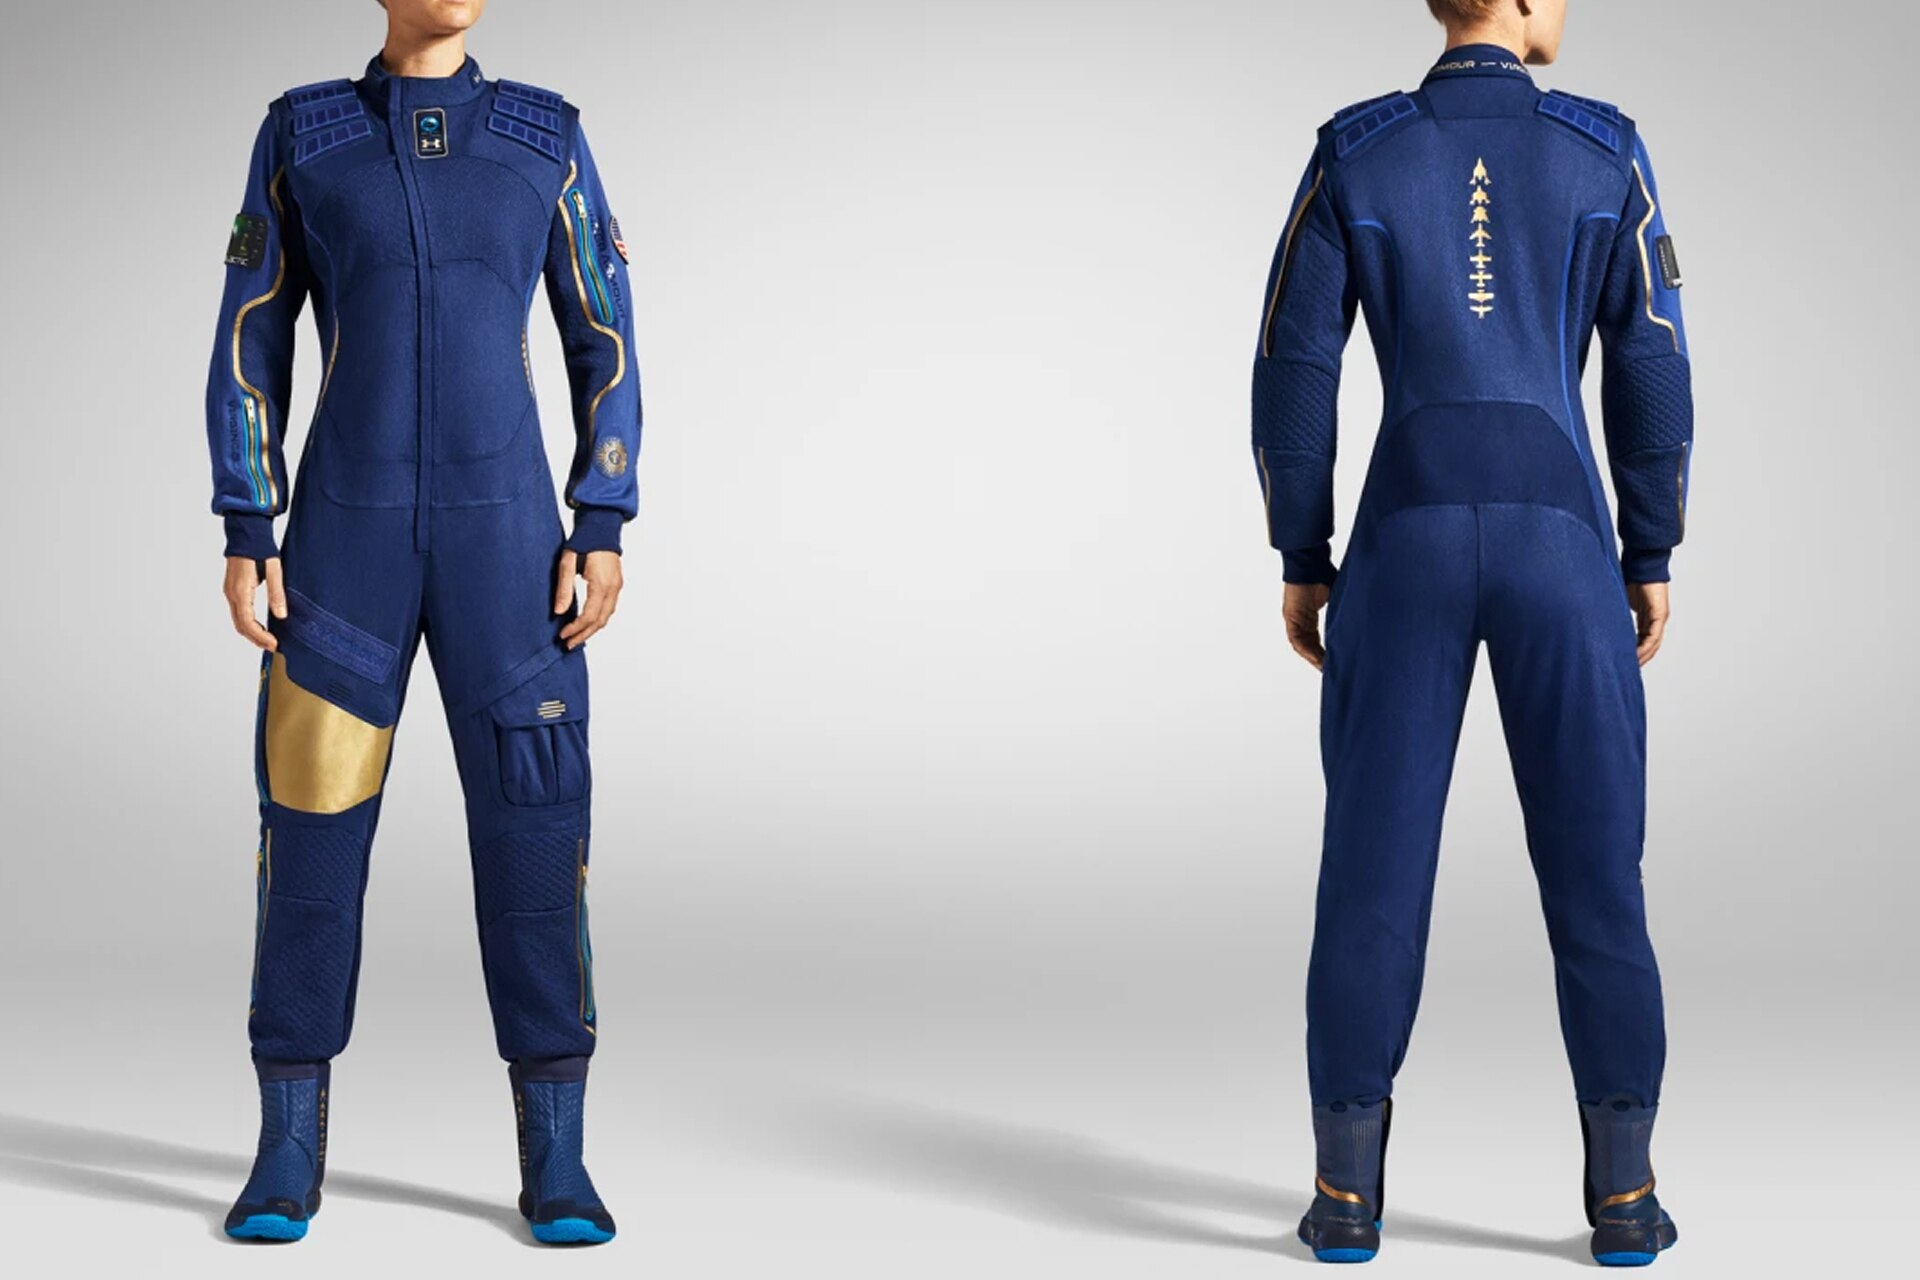 Under Armour Just Revealed The Suits Tourists On Virgin Galactic's Space Flights Will Wear